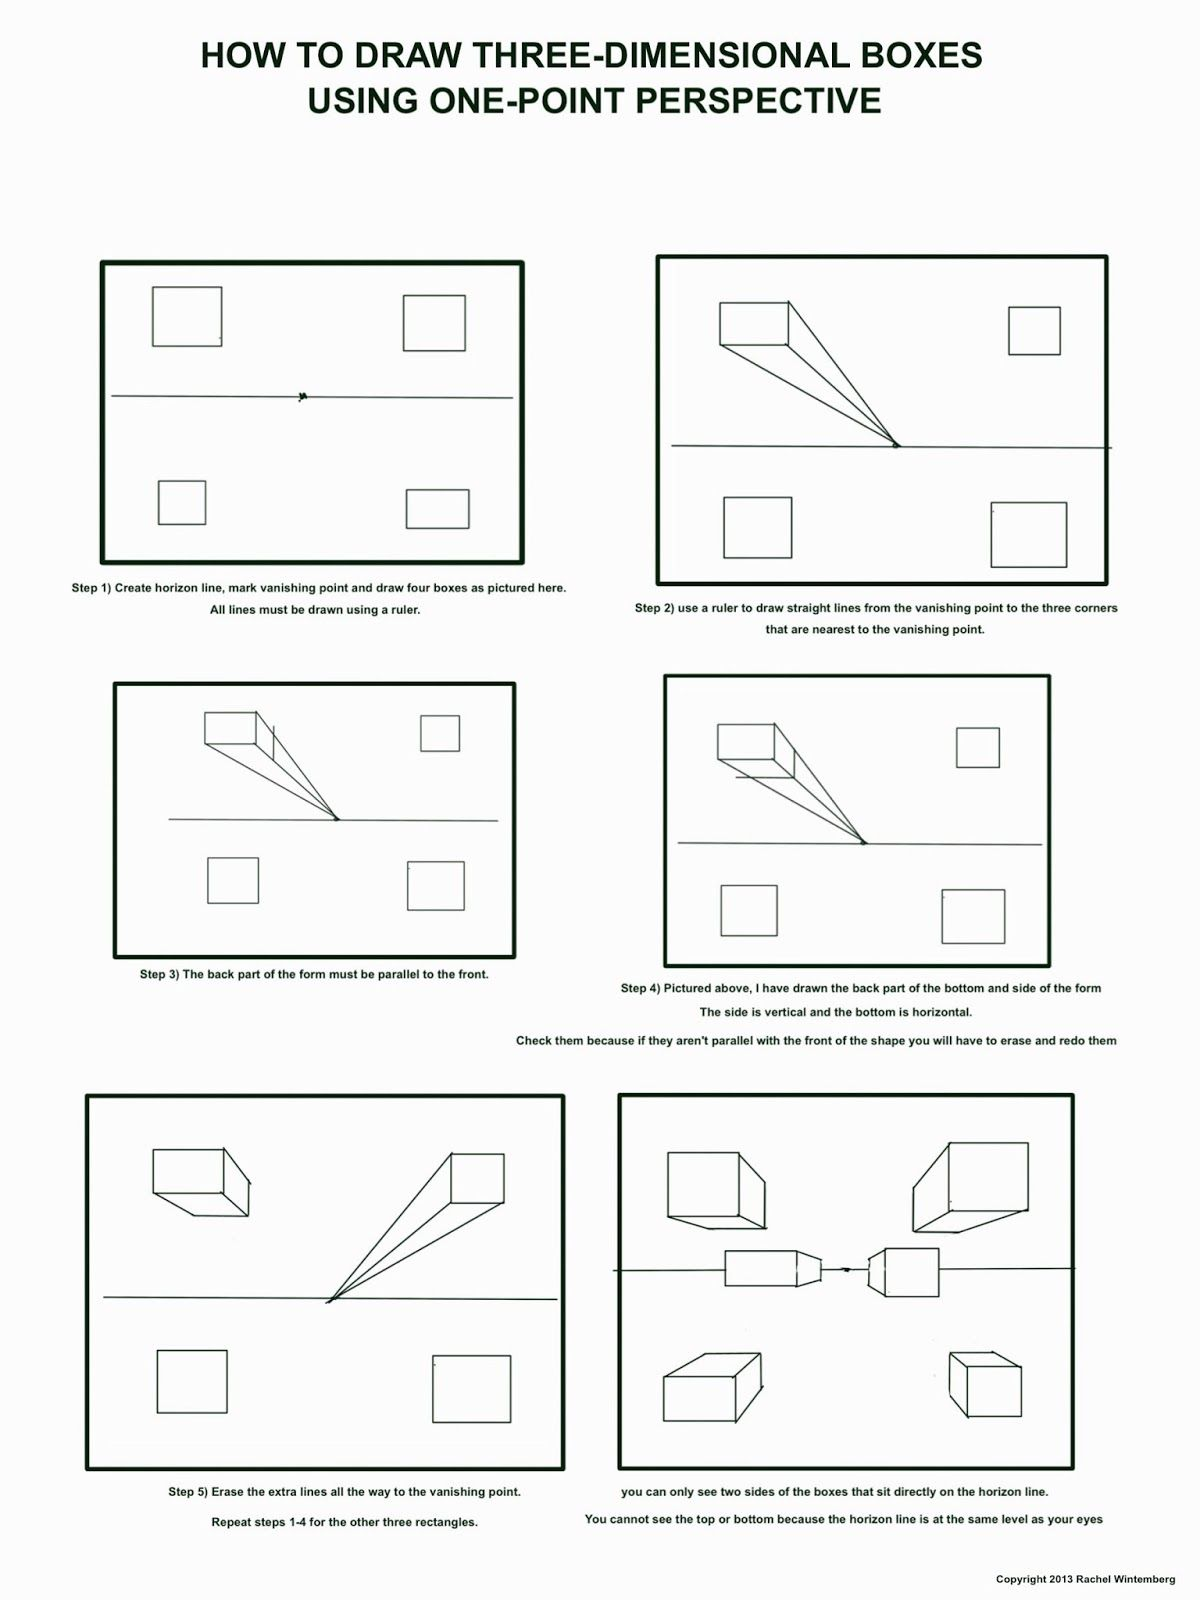 worksheet Step Four Worksheets the helpful art teacher fun with one point perspective boxes and school projects